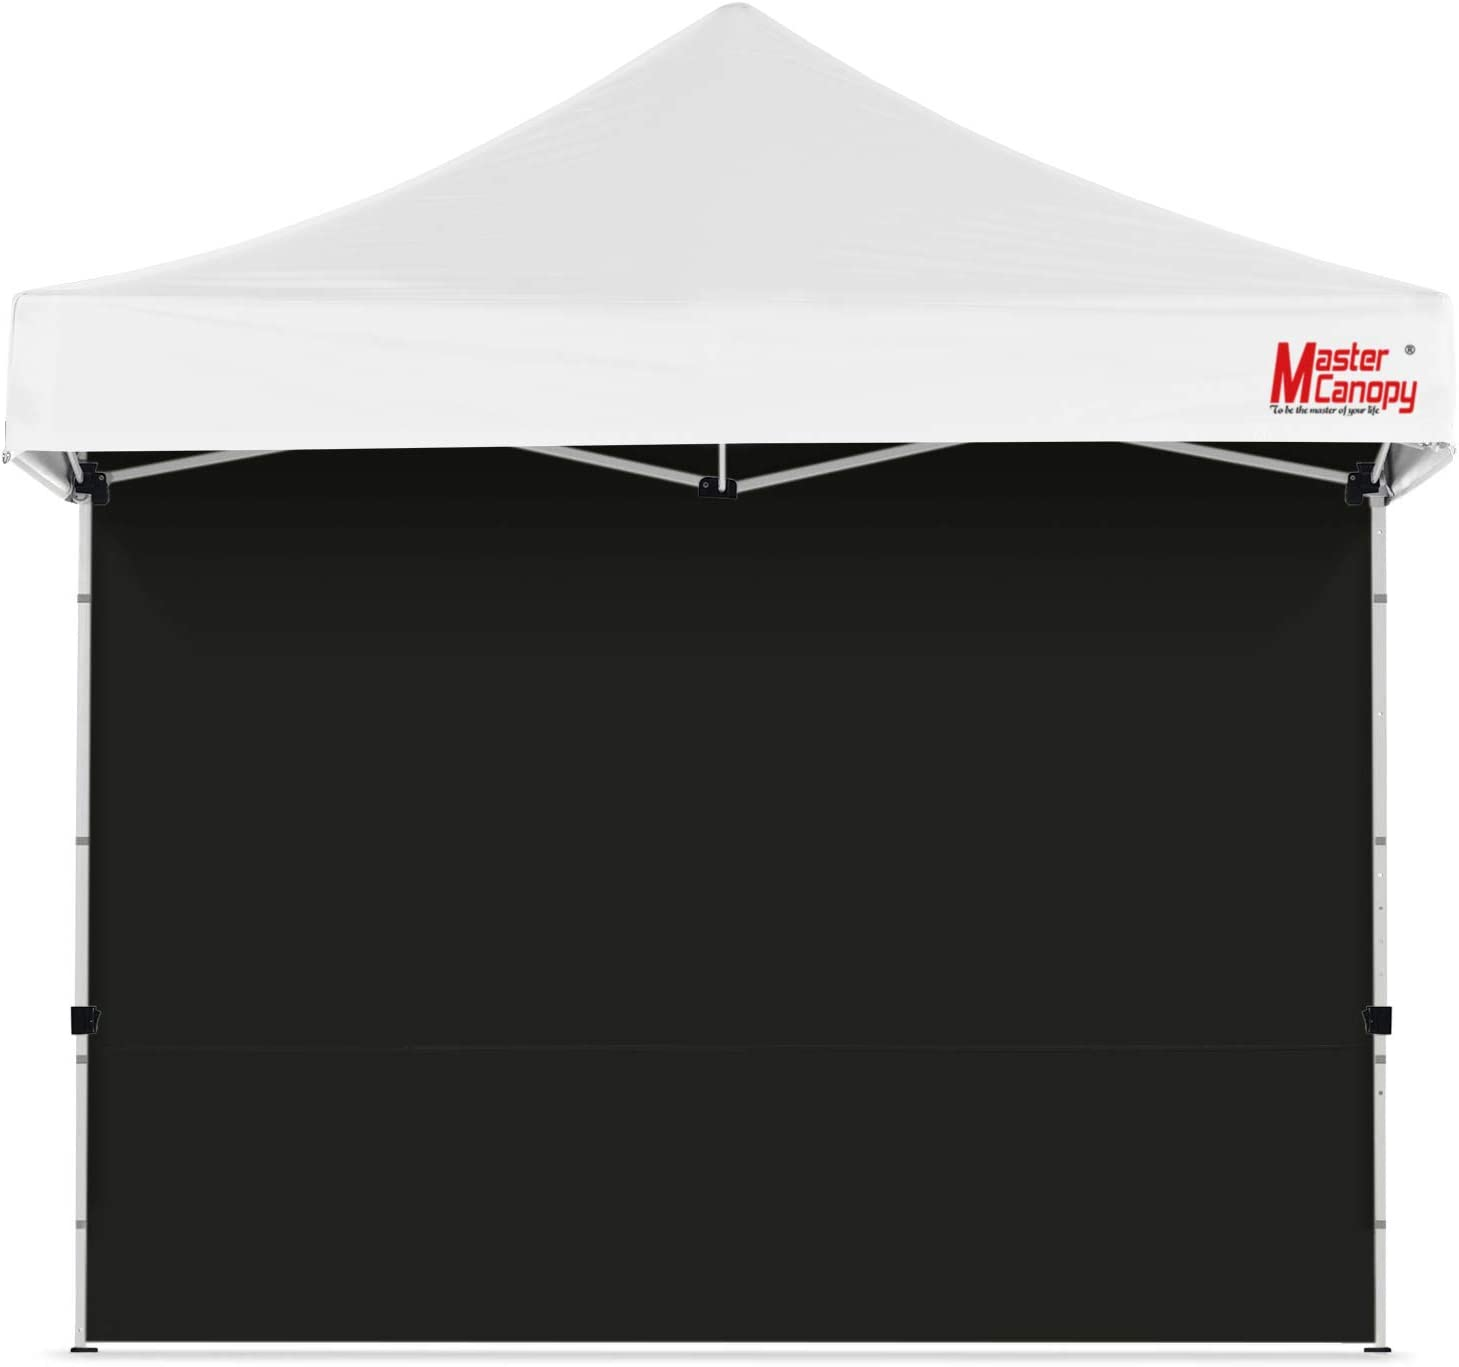 MASTERCANOPY Instant Canopy Tent Sidewall for 10x10 Pop Up Canopy, 1 Pack (10'x10', Black)